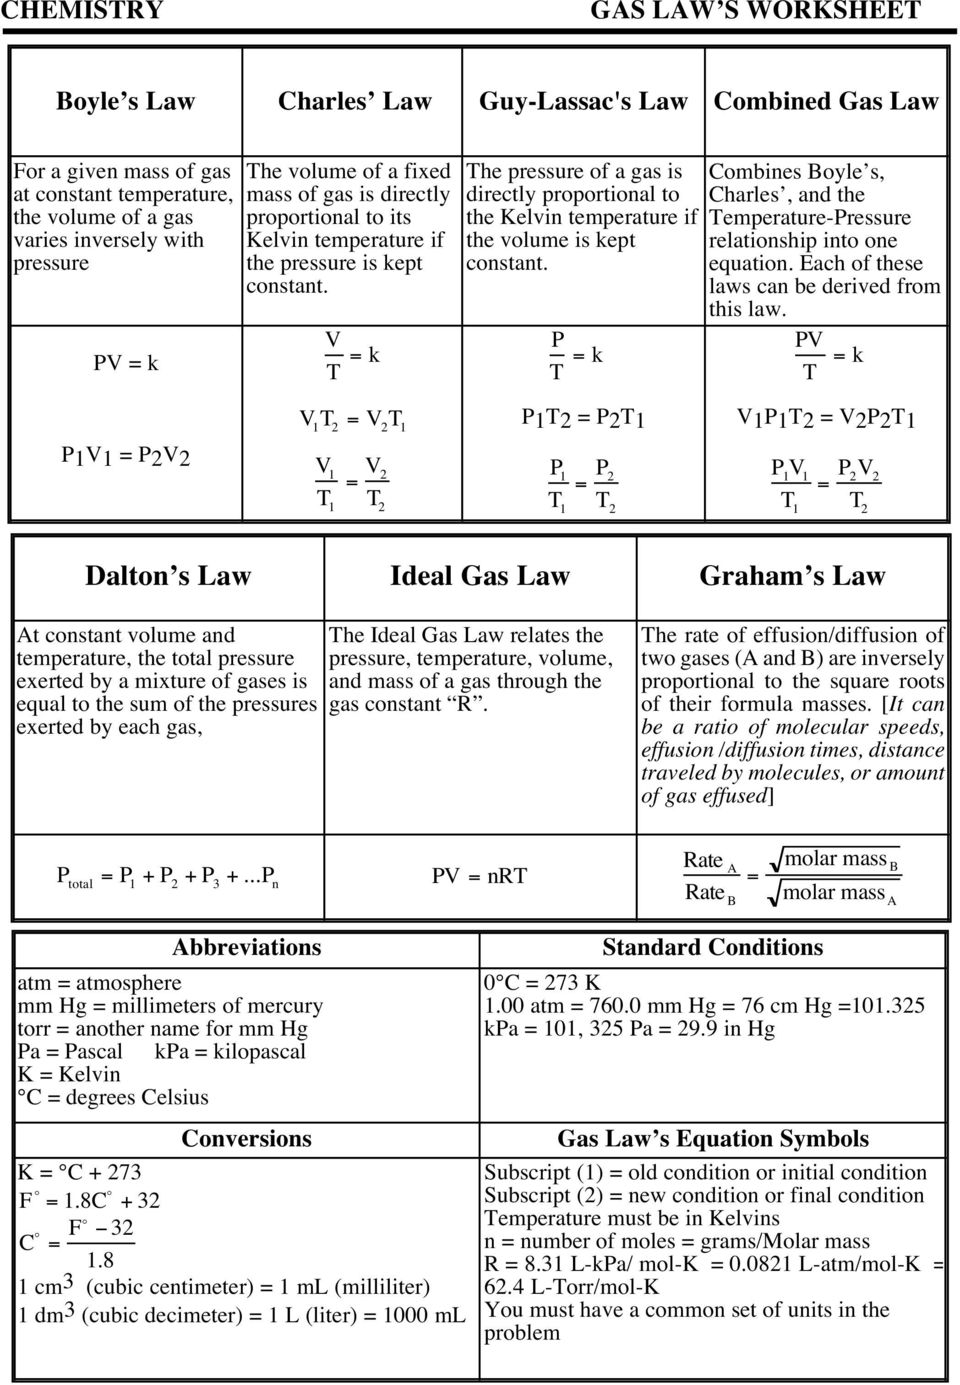 gas laws review worksheet the best and most comprehensive worksheets. Black Bedroom Furniture Sets. Home Design Ideas